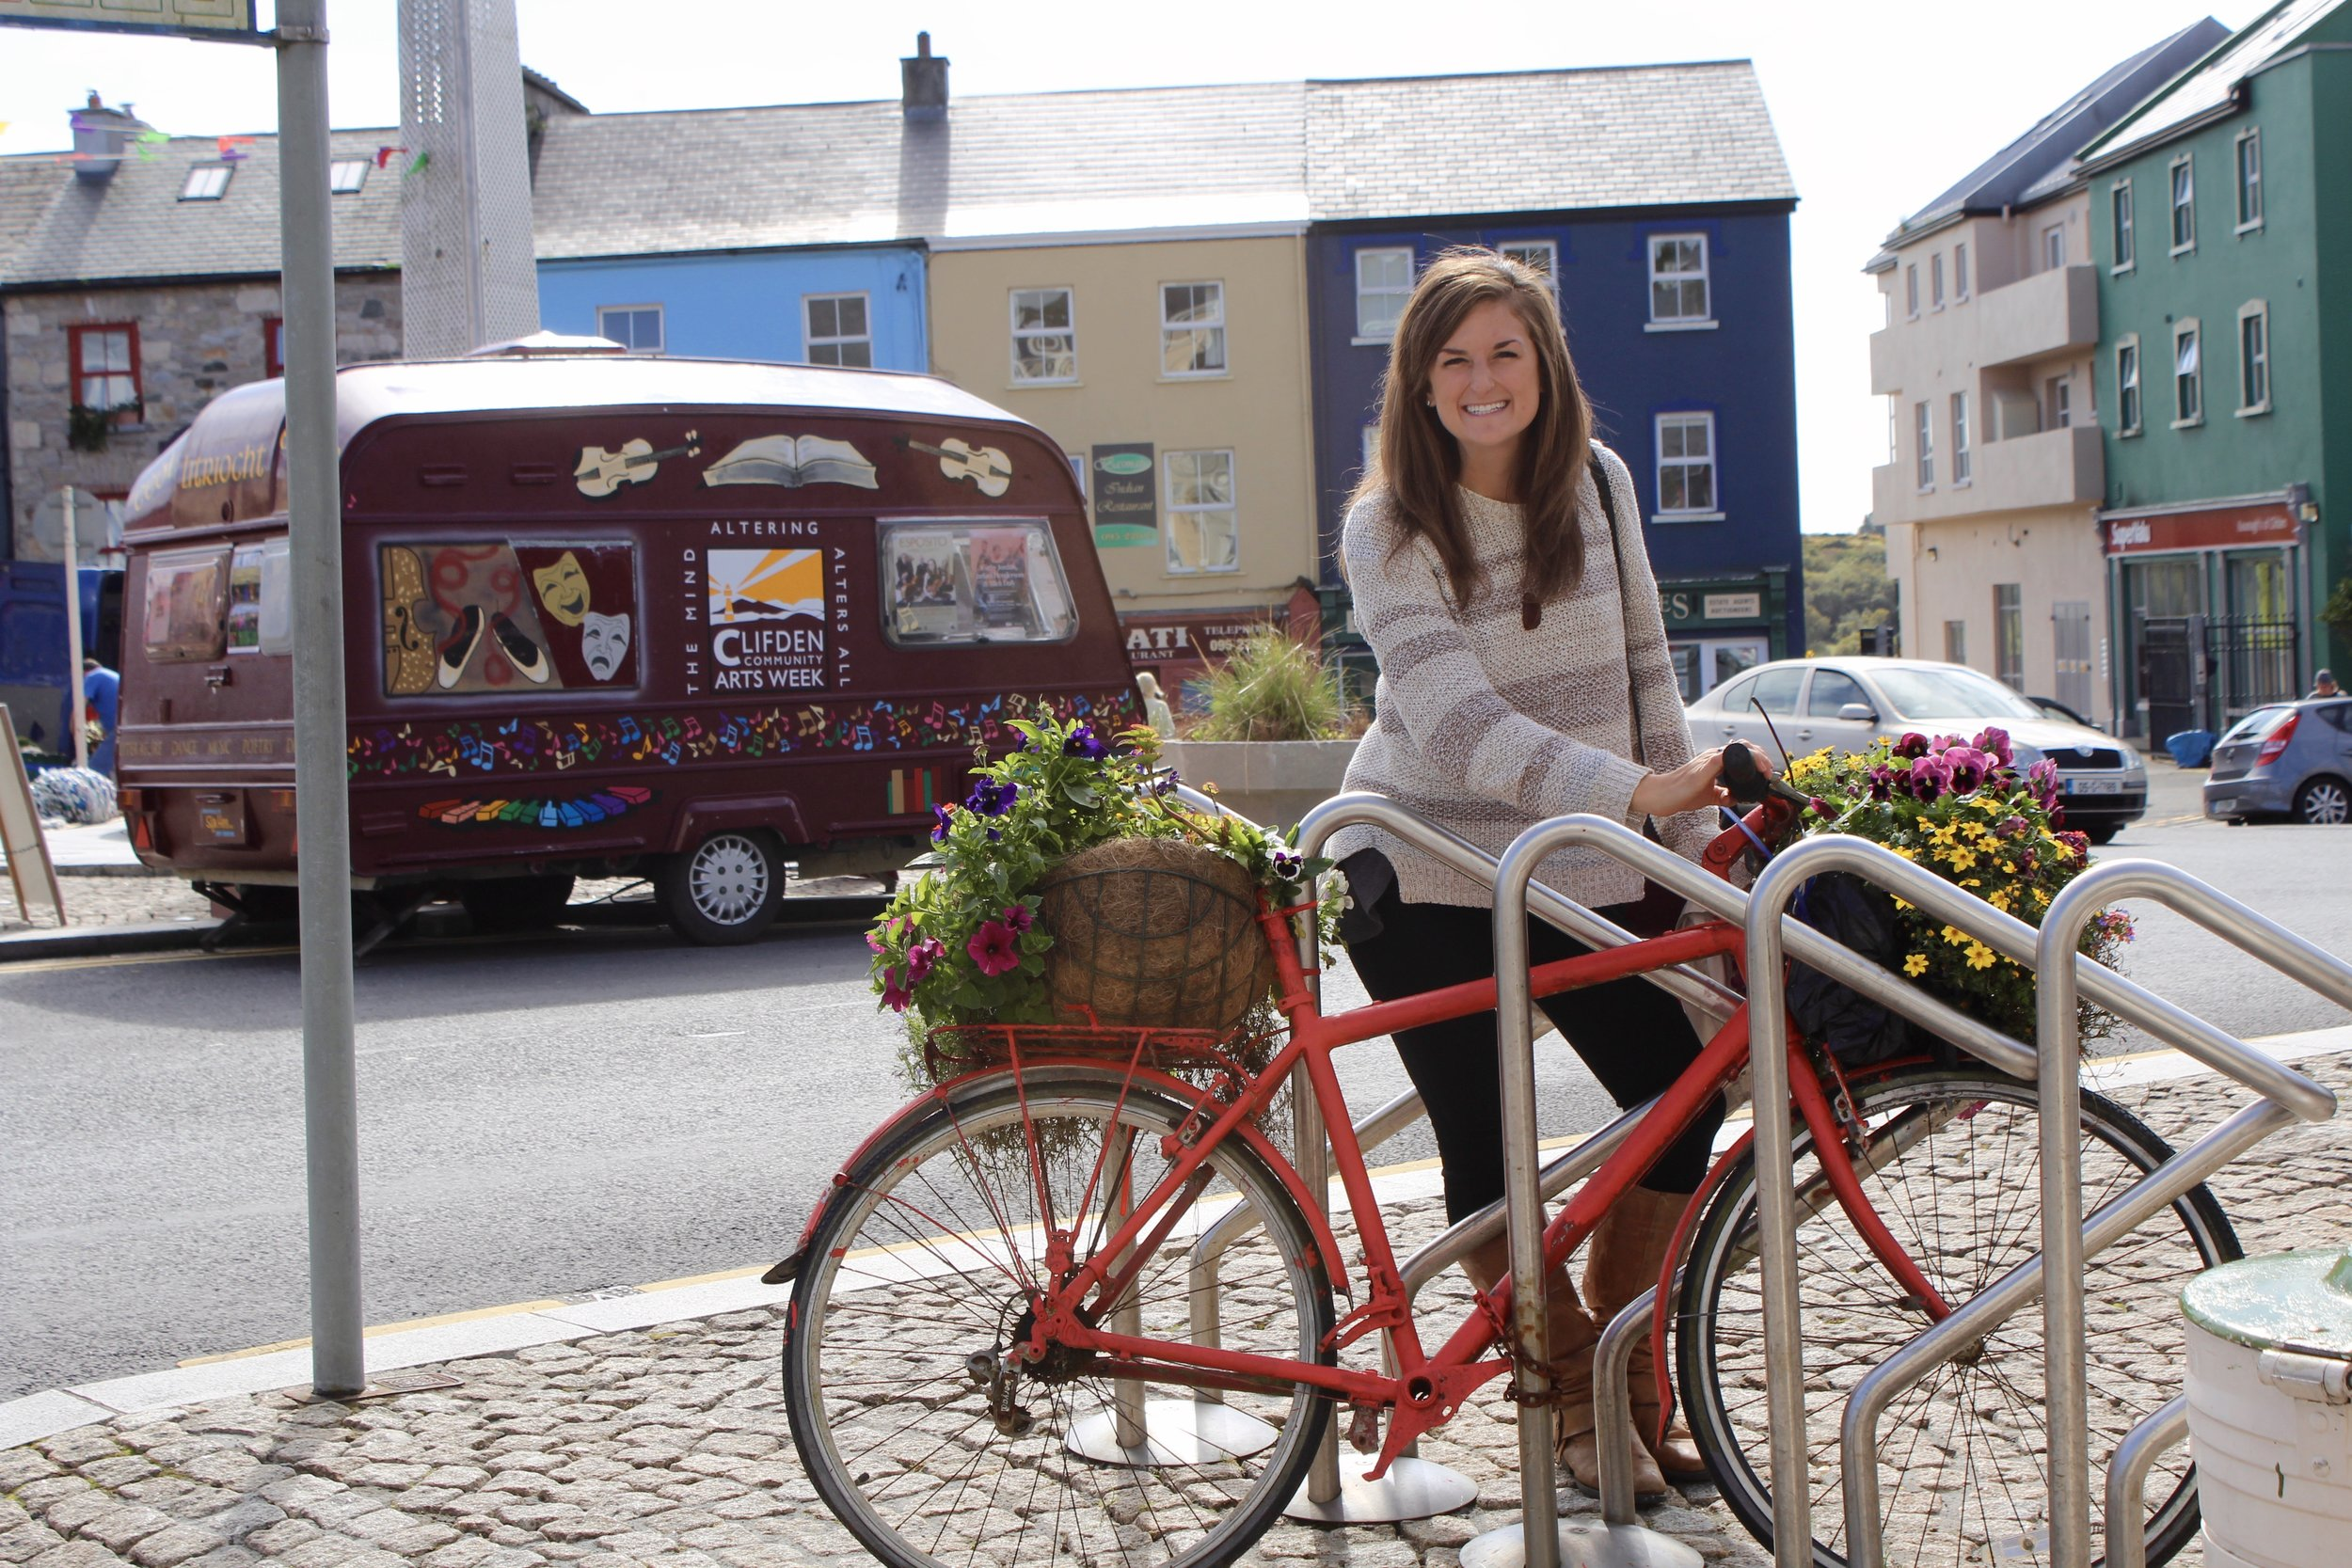 Me and a bike with flower-filled baskets in Clifden, Connemara. When it's an option, I much prefer biking or walking to motorized vehicles.